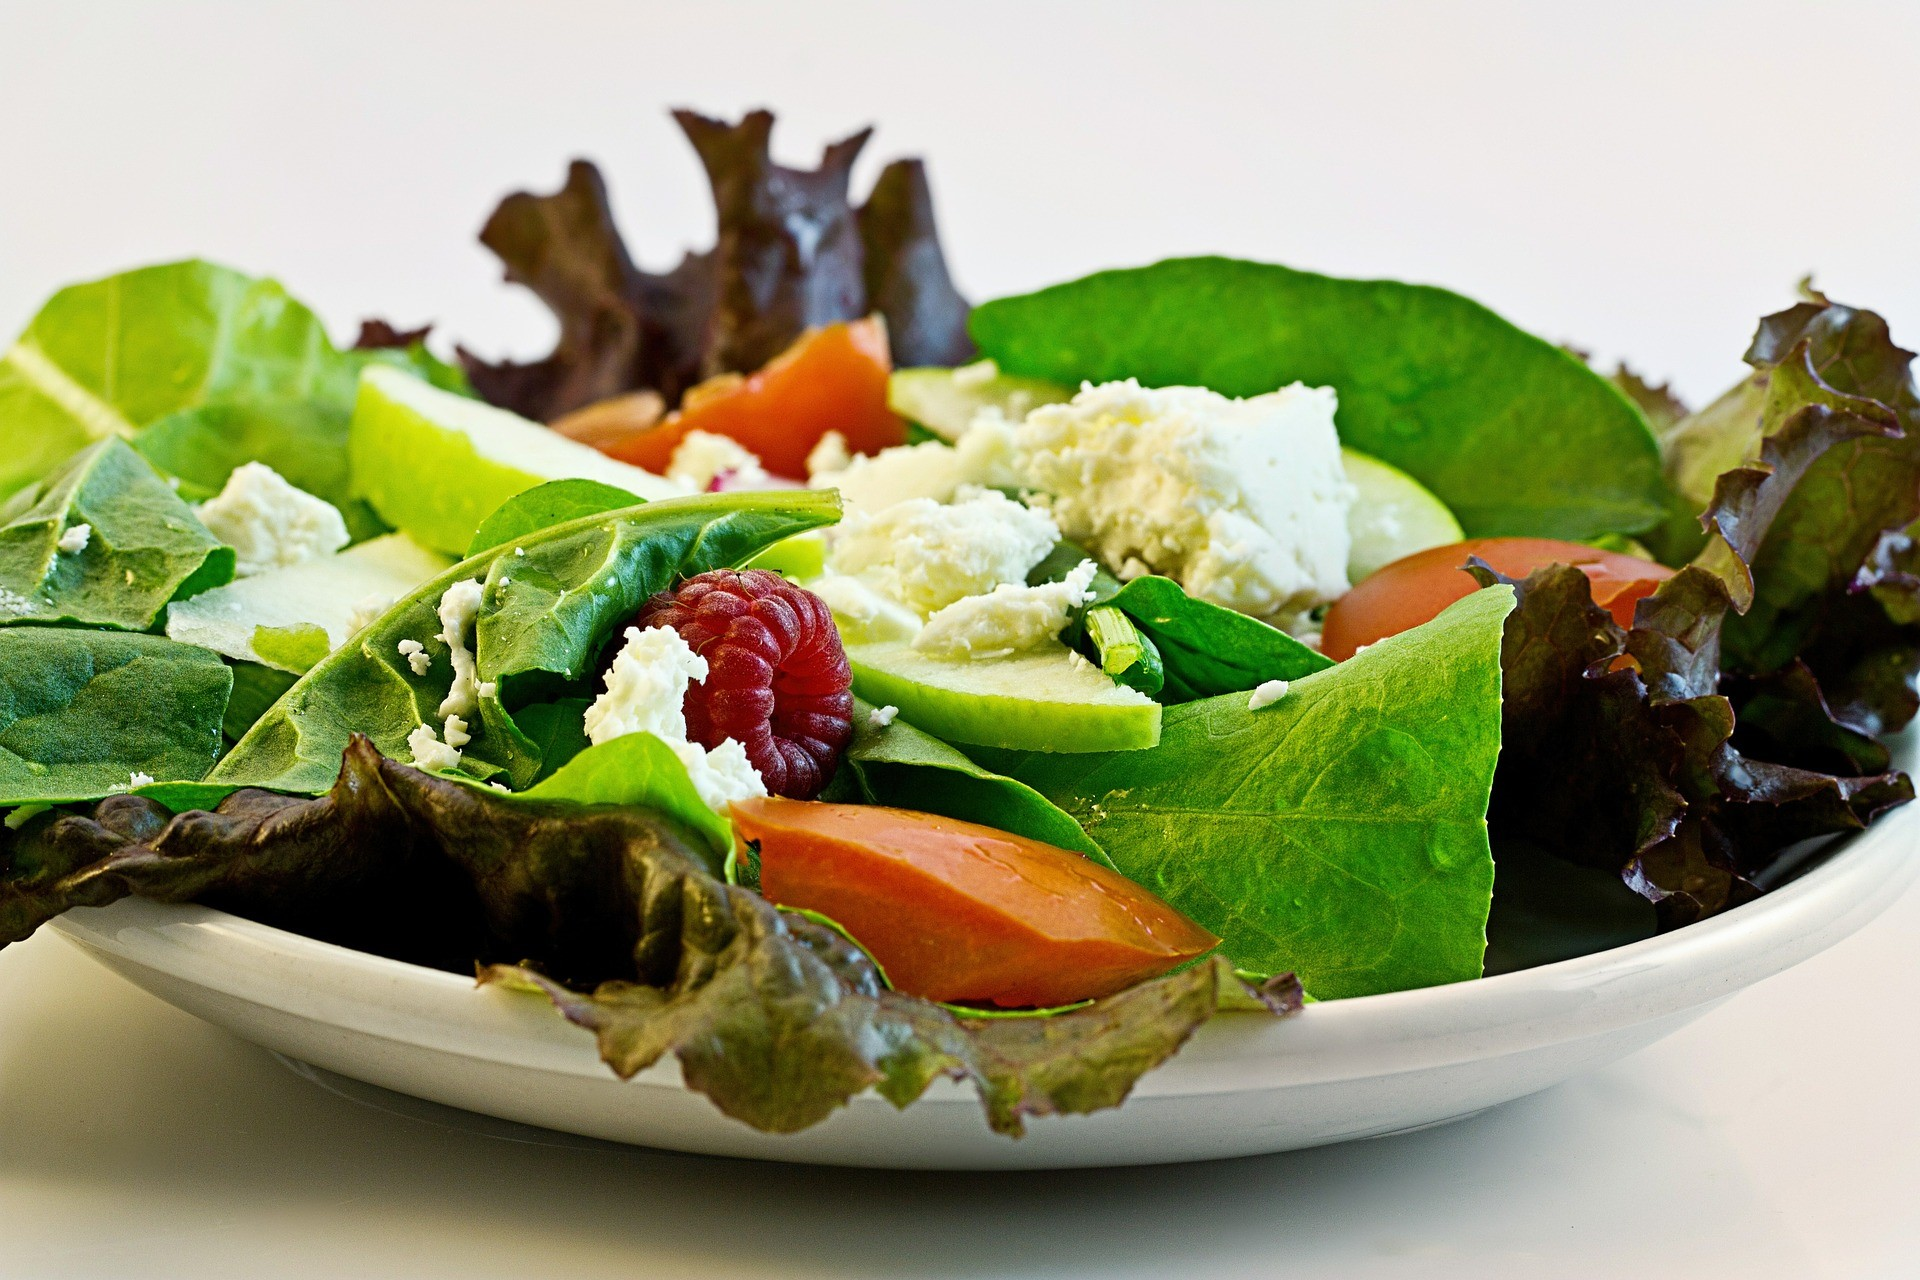 Salads are good weight loss food